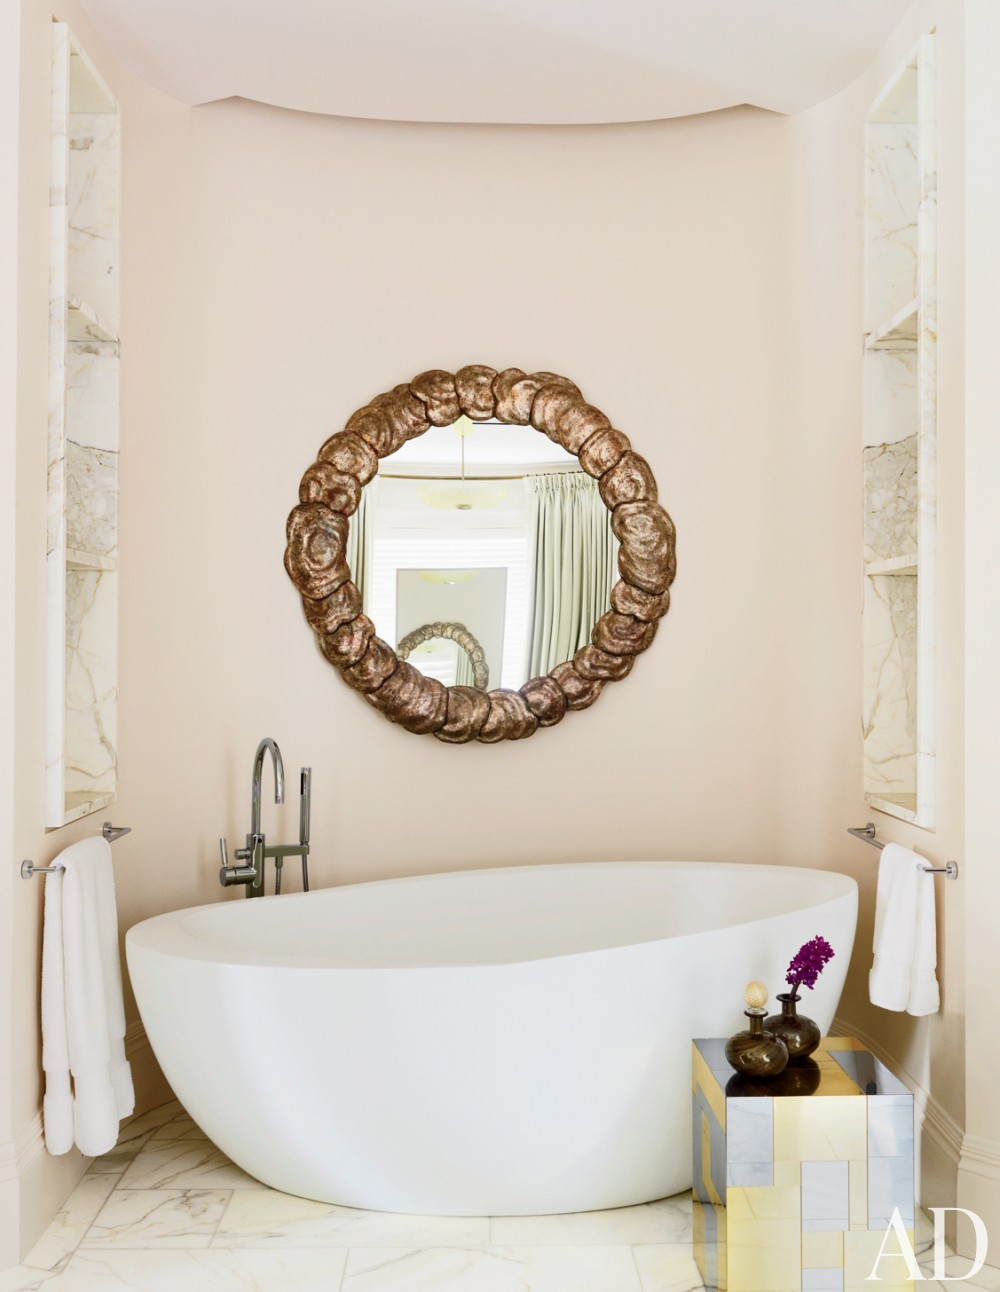 Modern Bathroom by Thad Hayes Inc. and Dell Mitchell Architects in Boston, Massachusetts